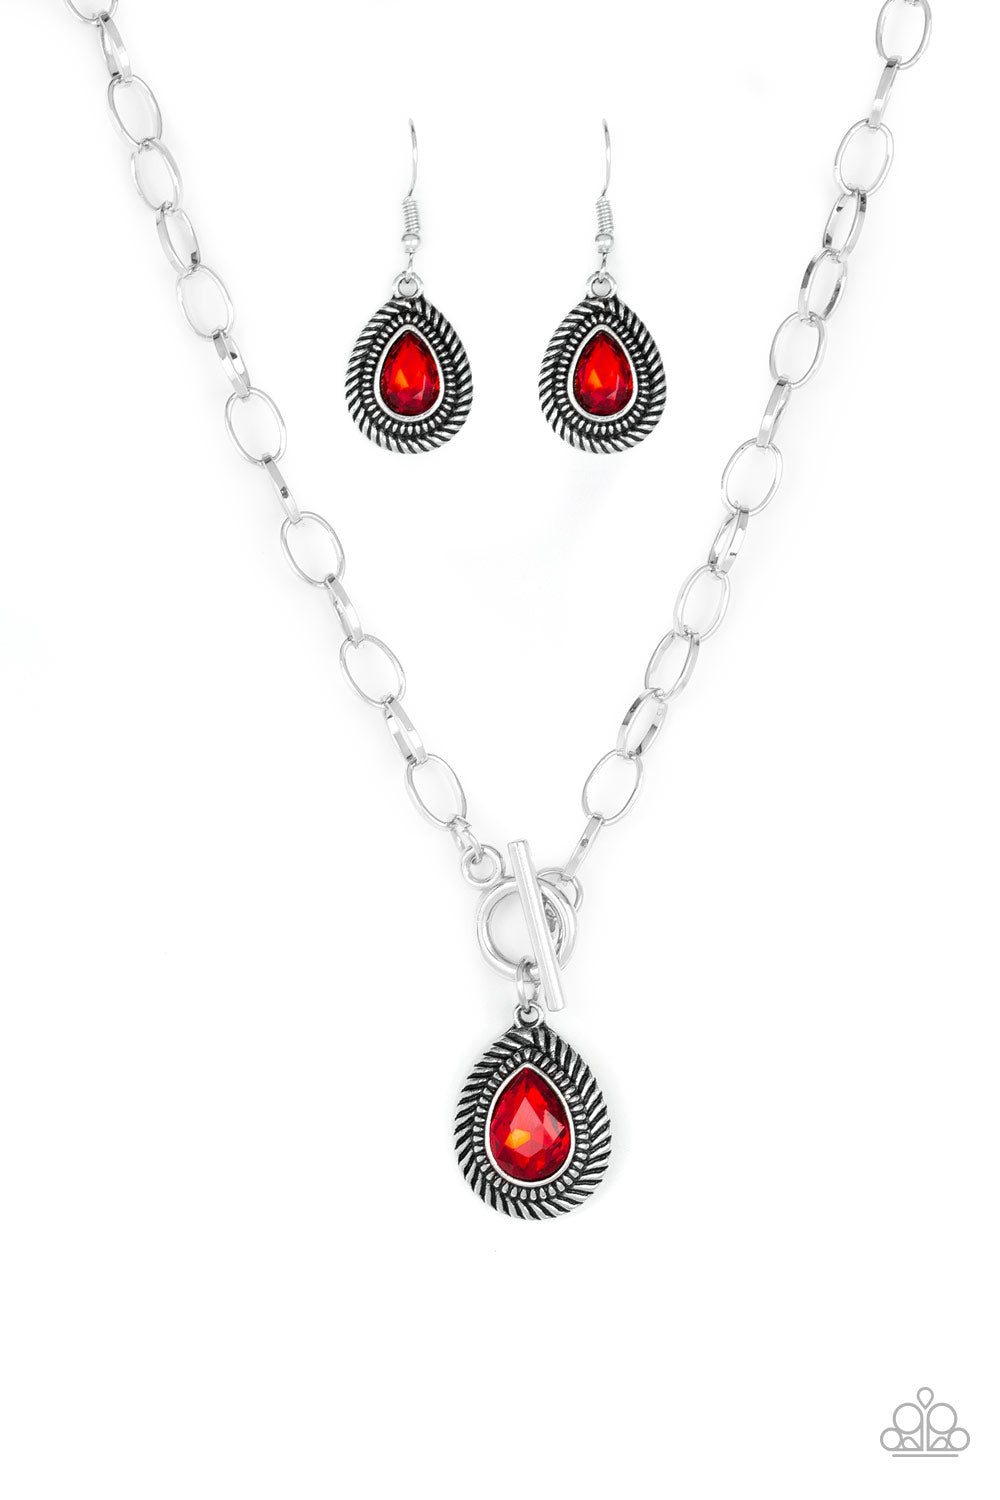 Paparazzi Necklace - Sheen Queen - Red